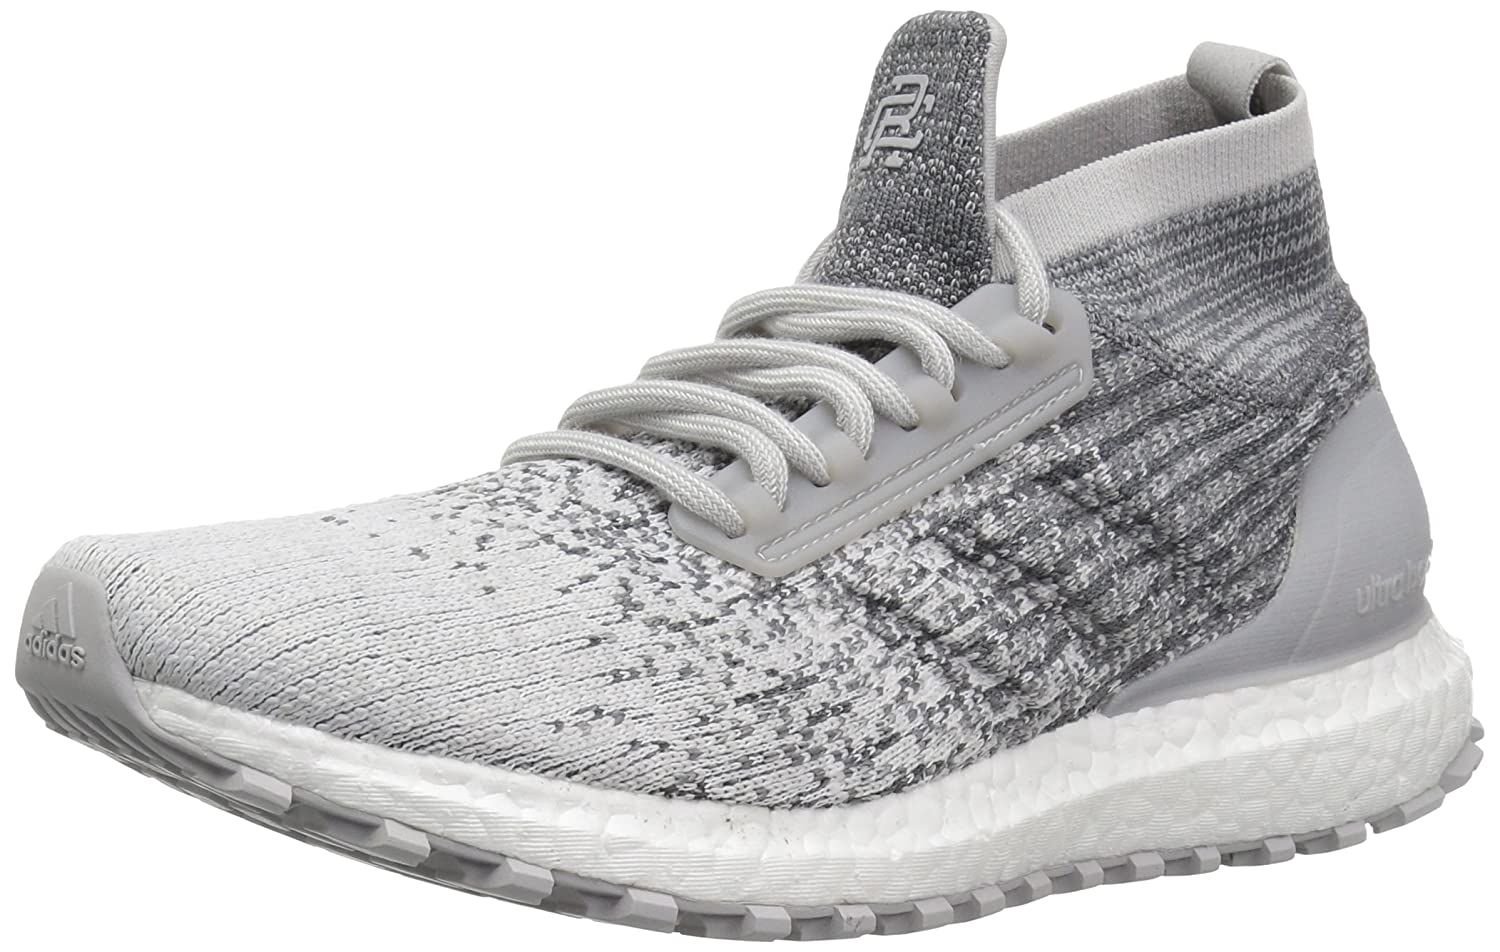 the latest 2dfb9 6a0c2 adidas X Reigning Champ UltraBOOST All Terrain Shoe